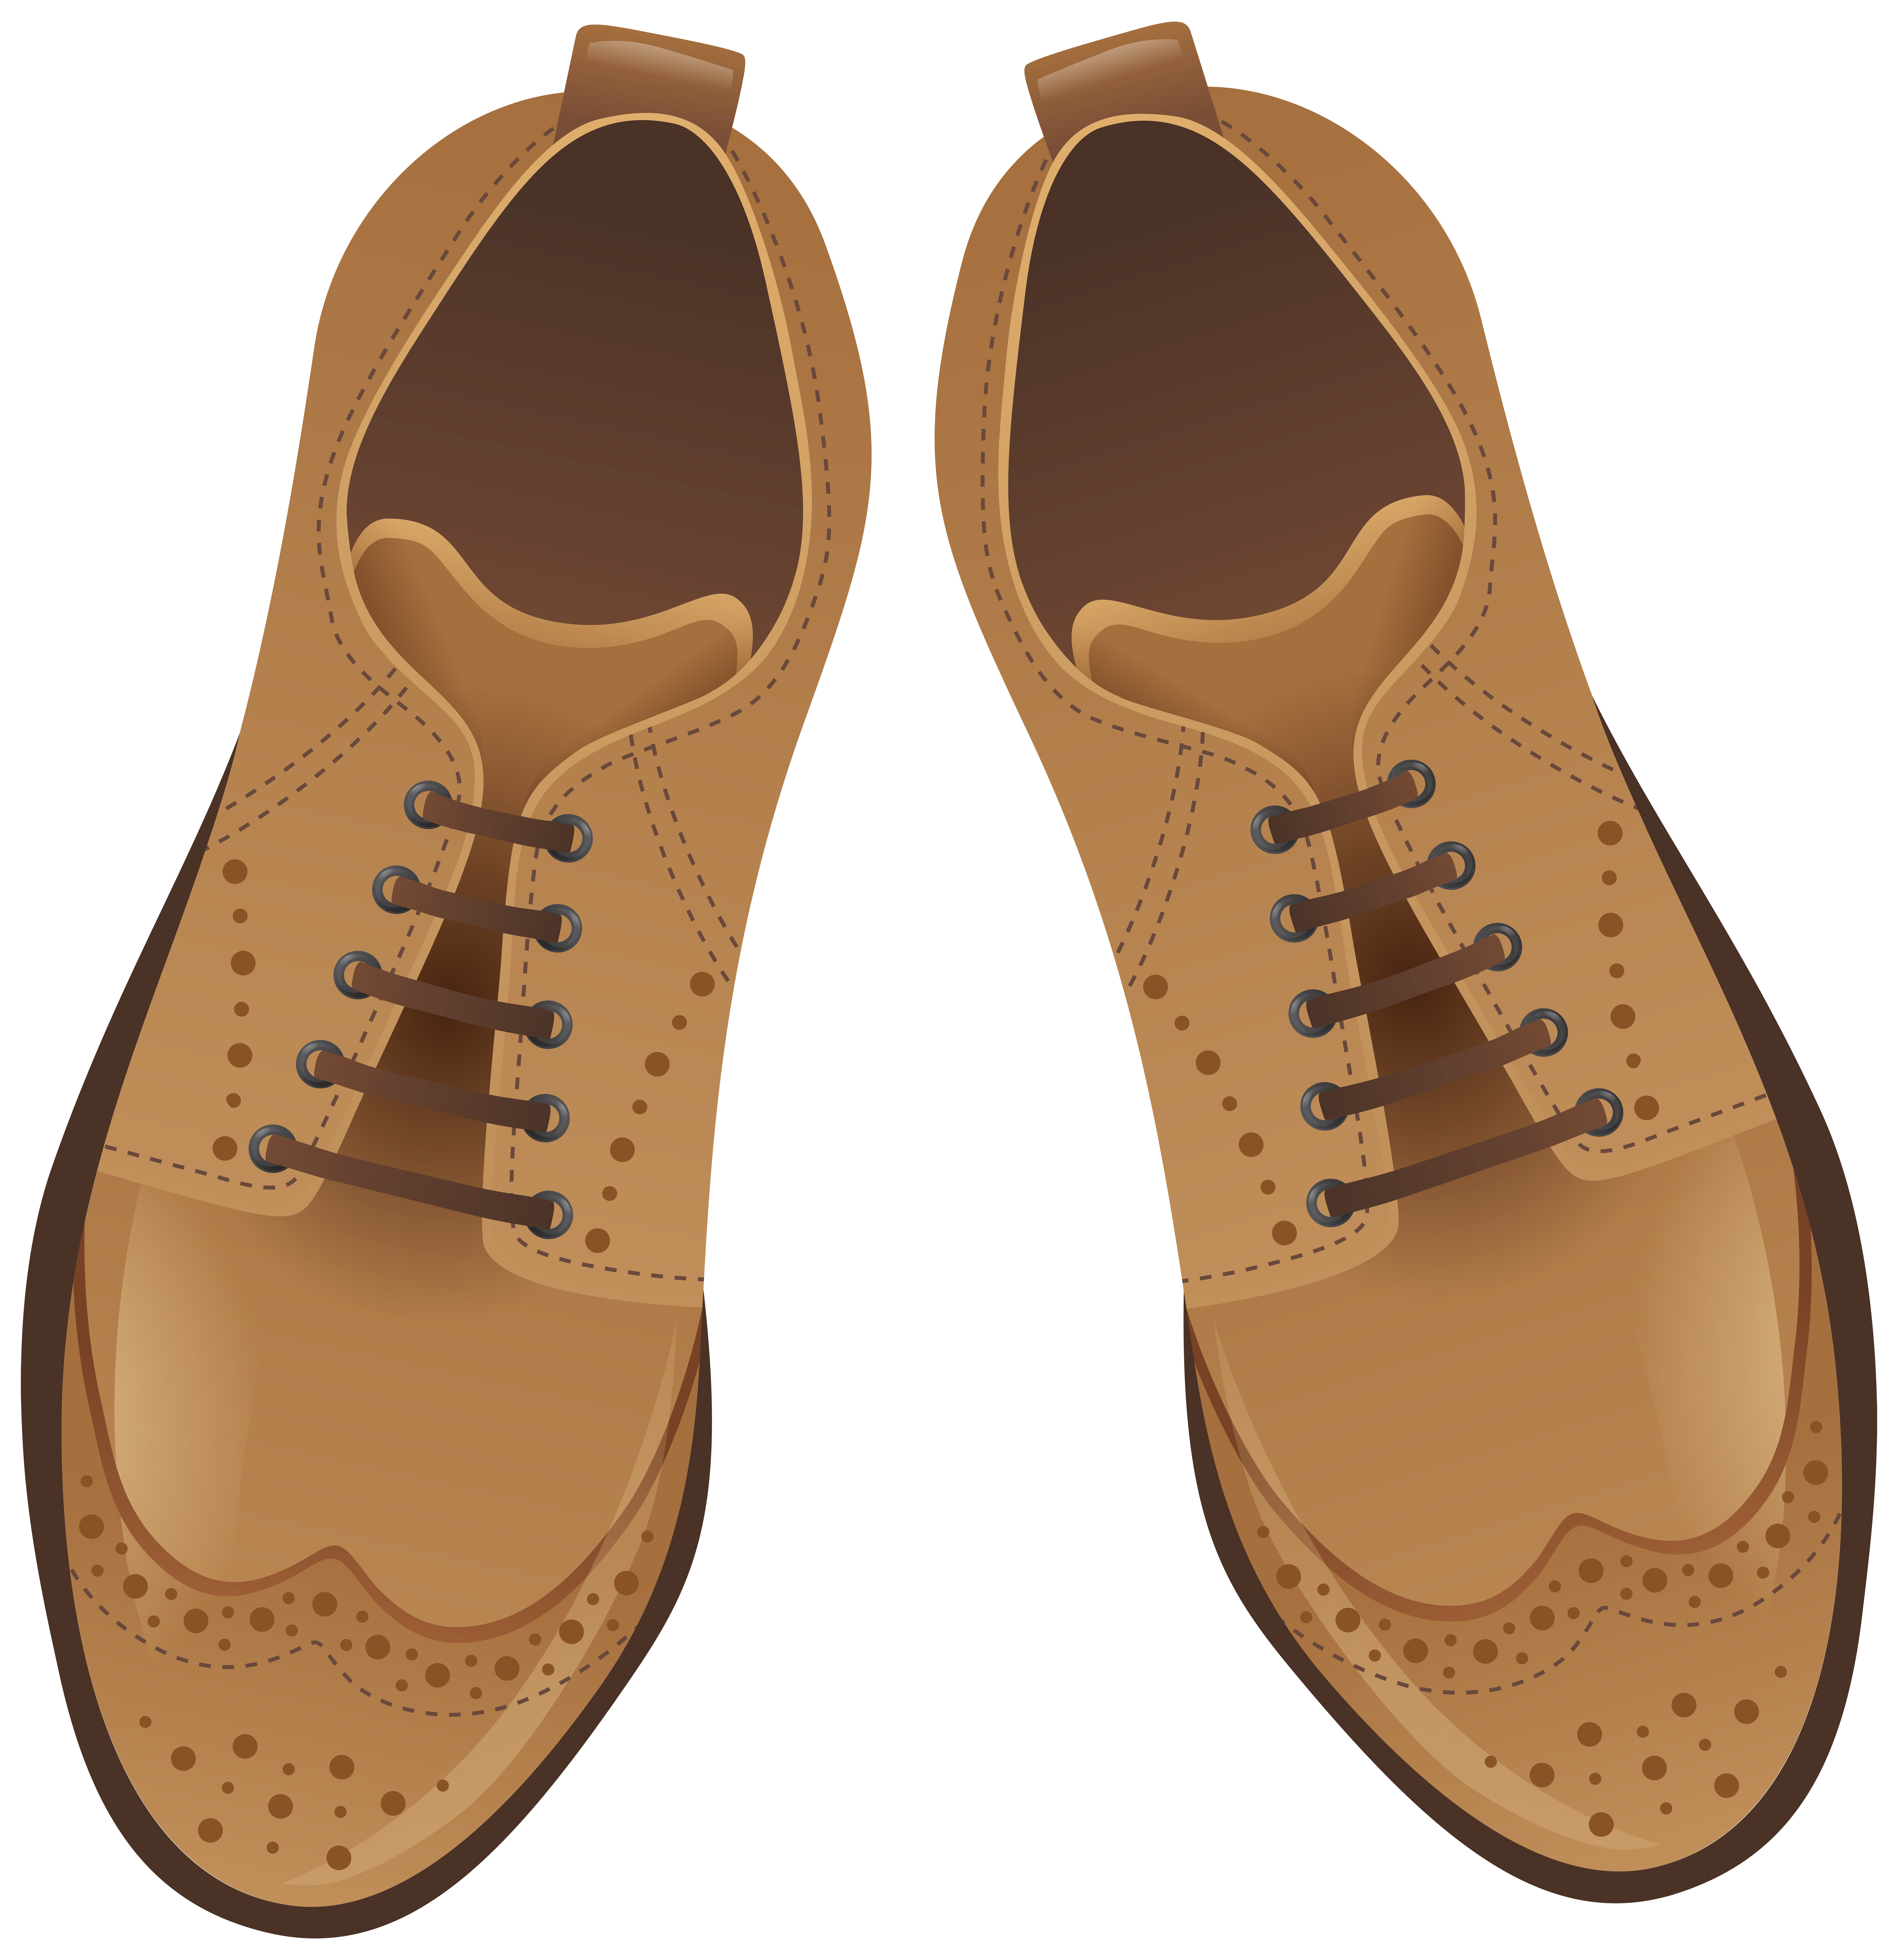 Shoes that cost a lot of money clipart image transparent Brown and White Shoes NG Clip Art - Best WEB Clipart image transparent